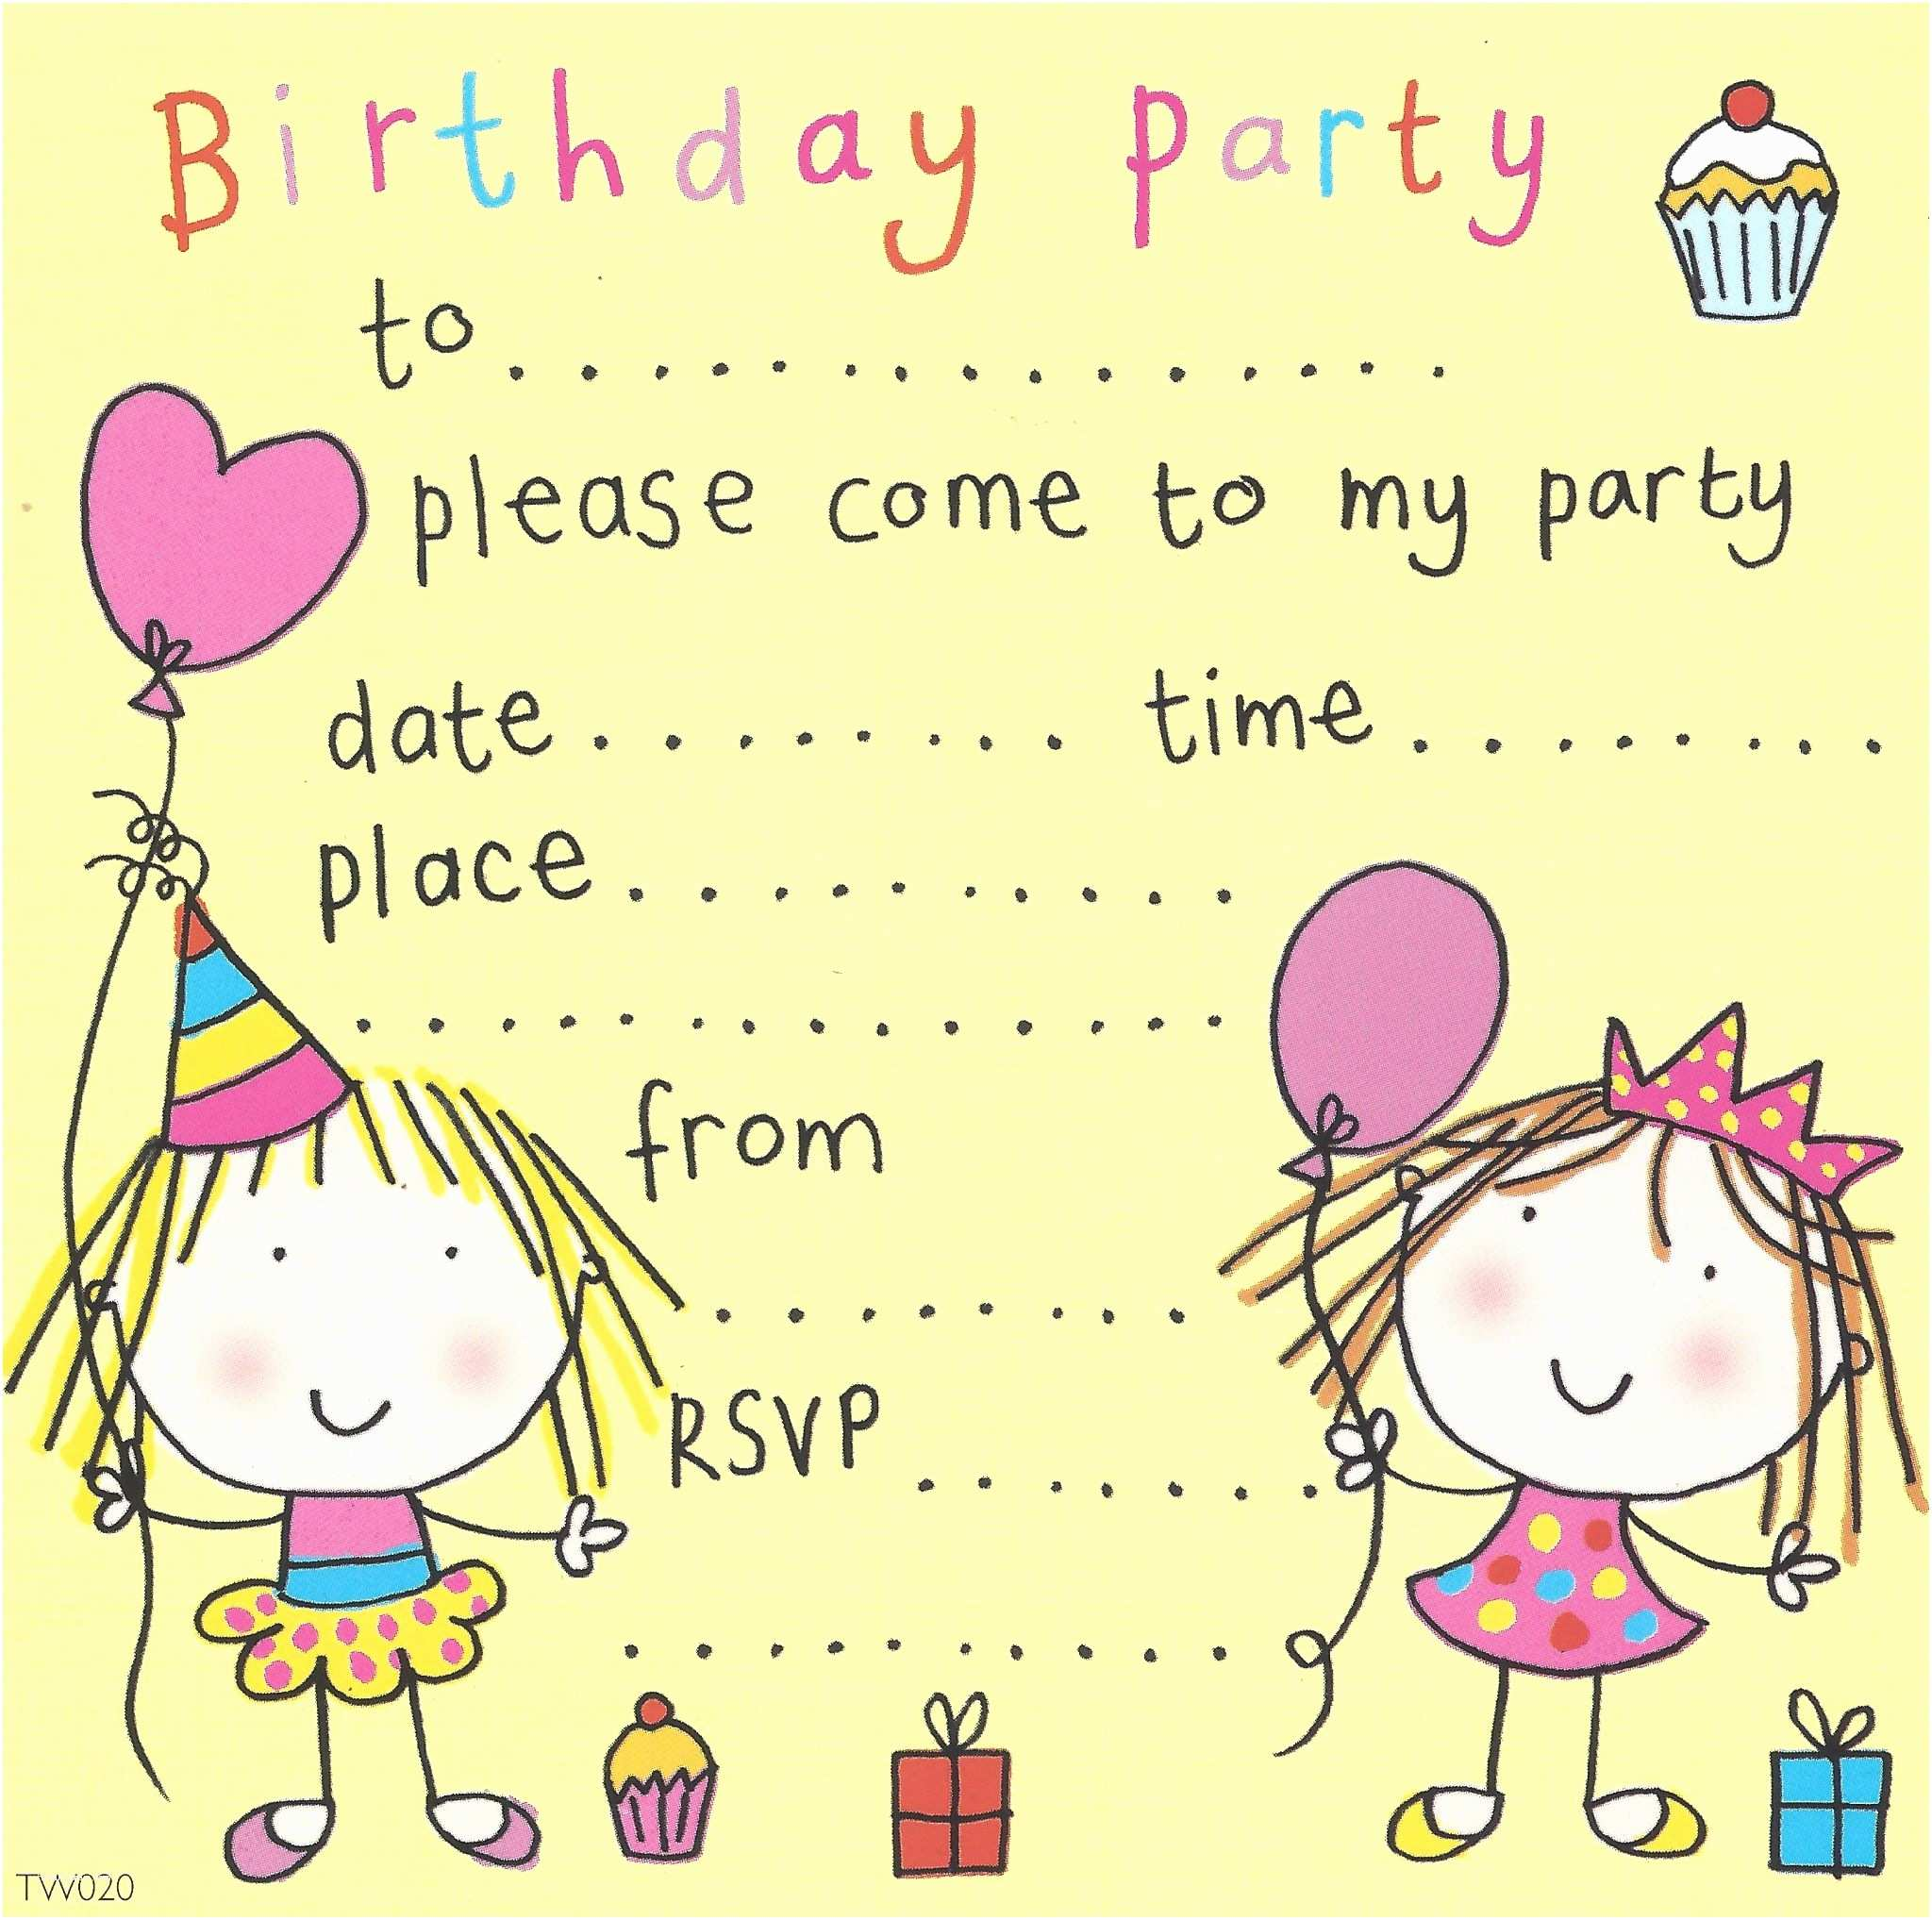 Childrens Birthday Party Invitations Party Invitations Birthday Party Invitations Kids Party